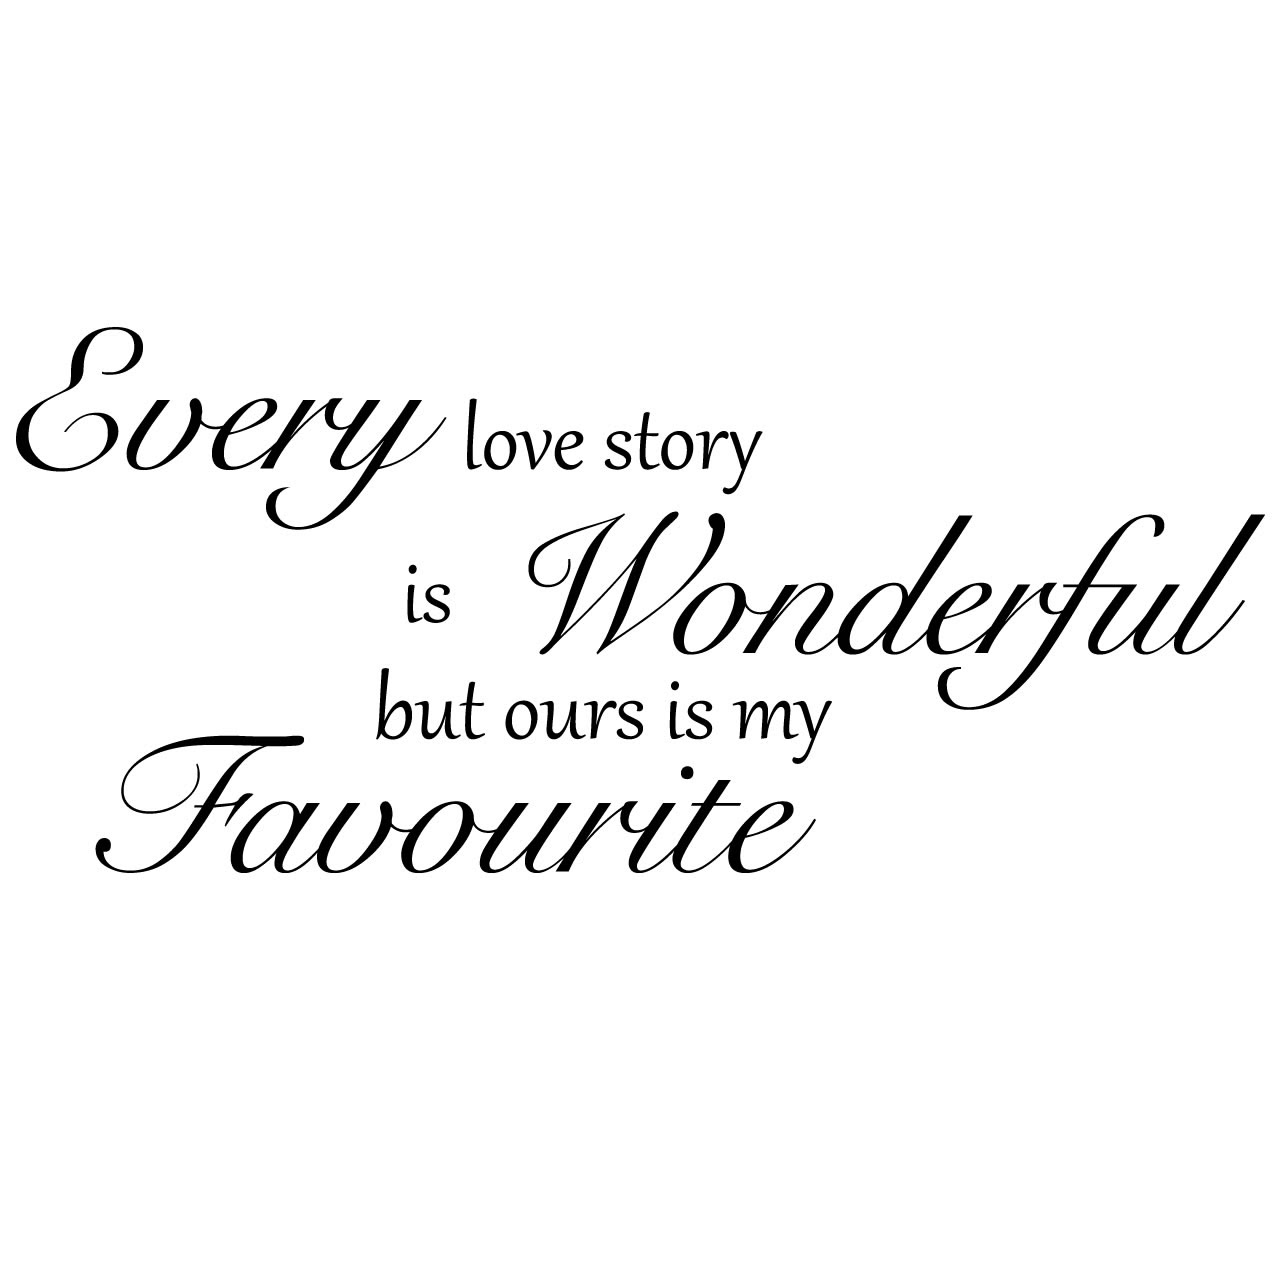 25 our love story quotes Quotes